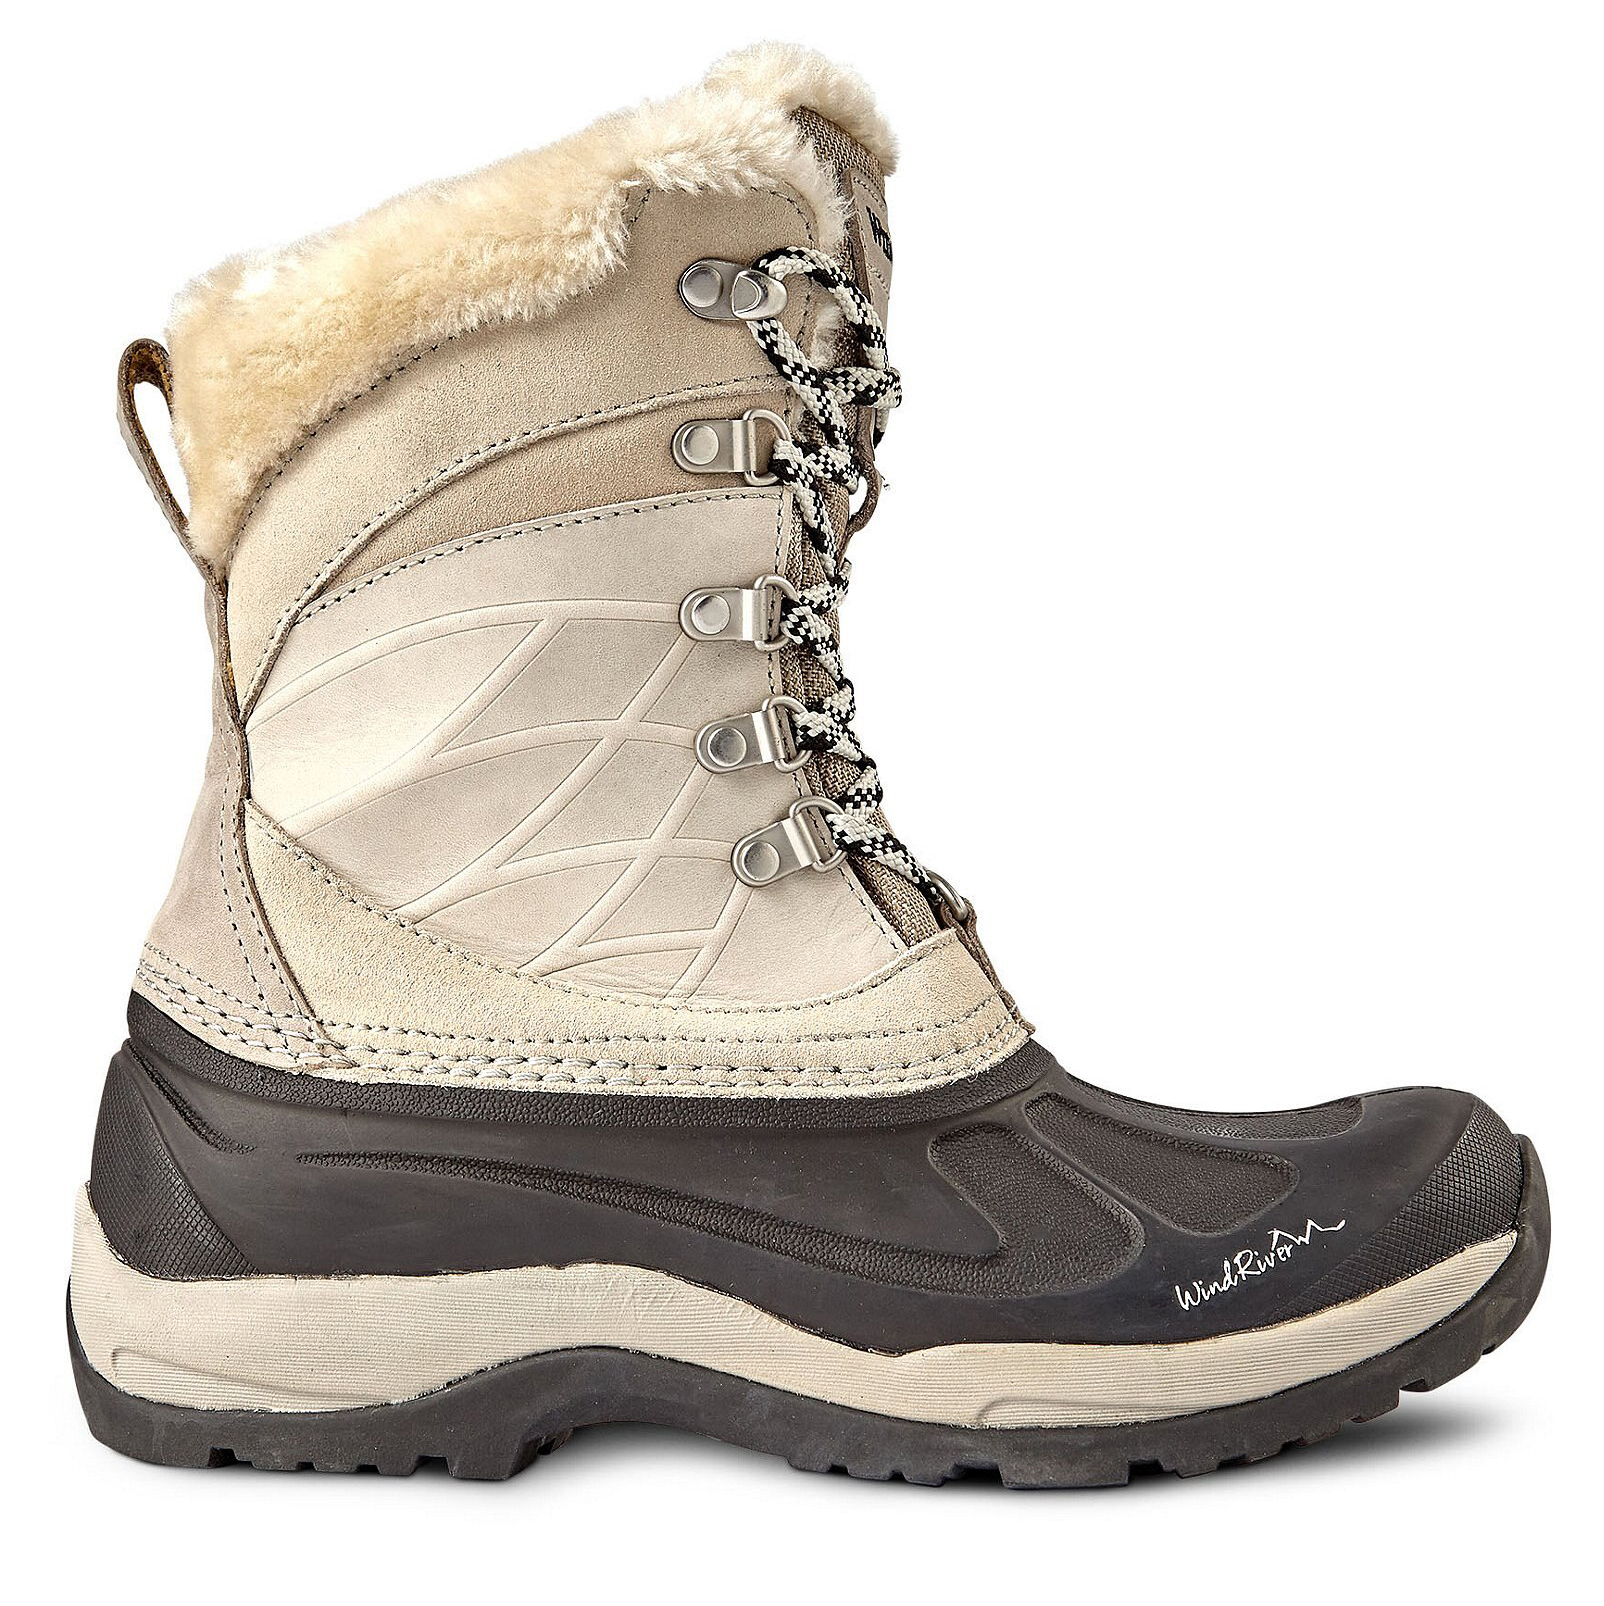 Best snow and ice boots for women - Windriver Women's Fernie Winter Boots